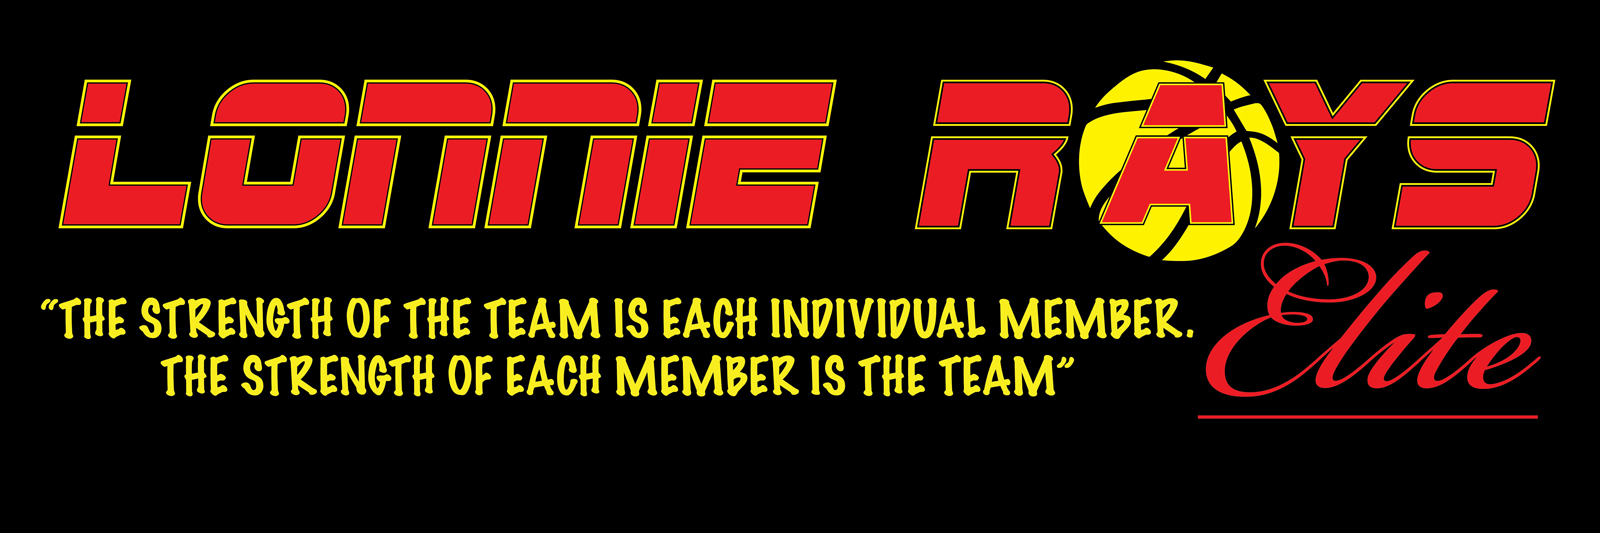 Lonnie Ray's Elite - ' The Strength of the Team is Each Individual Member. The Strength of Each Member is the Team'